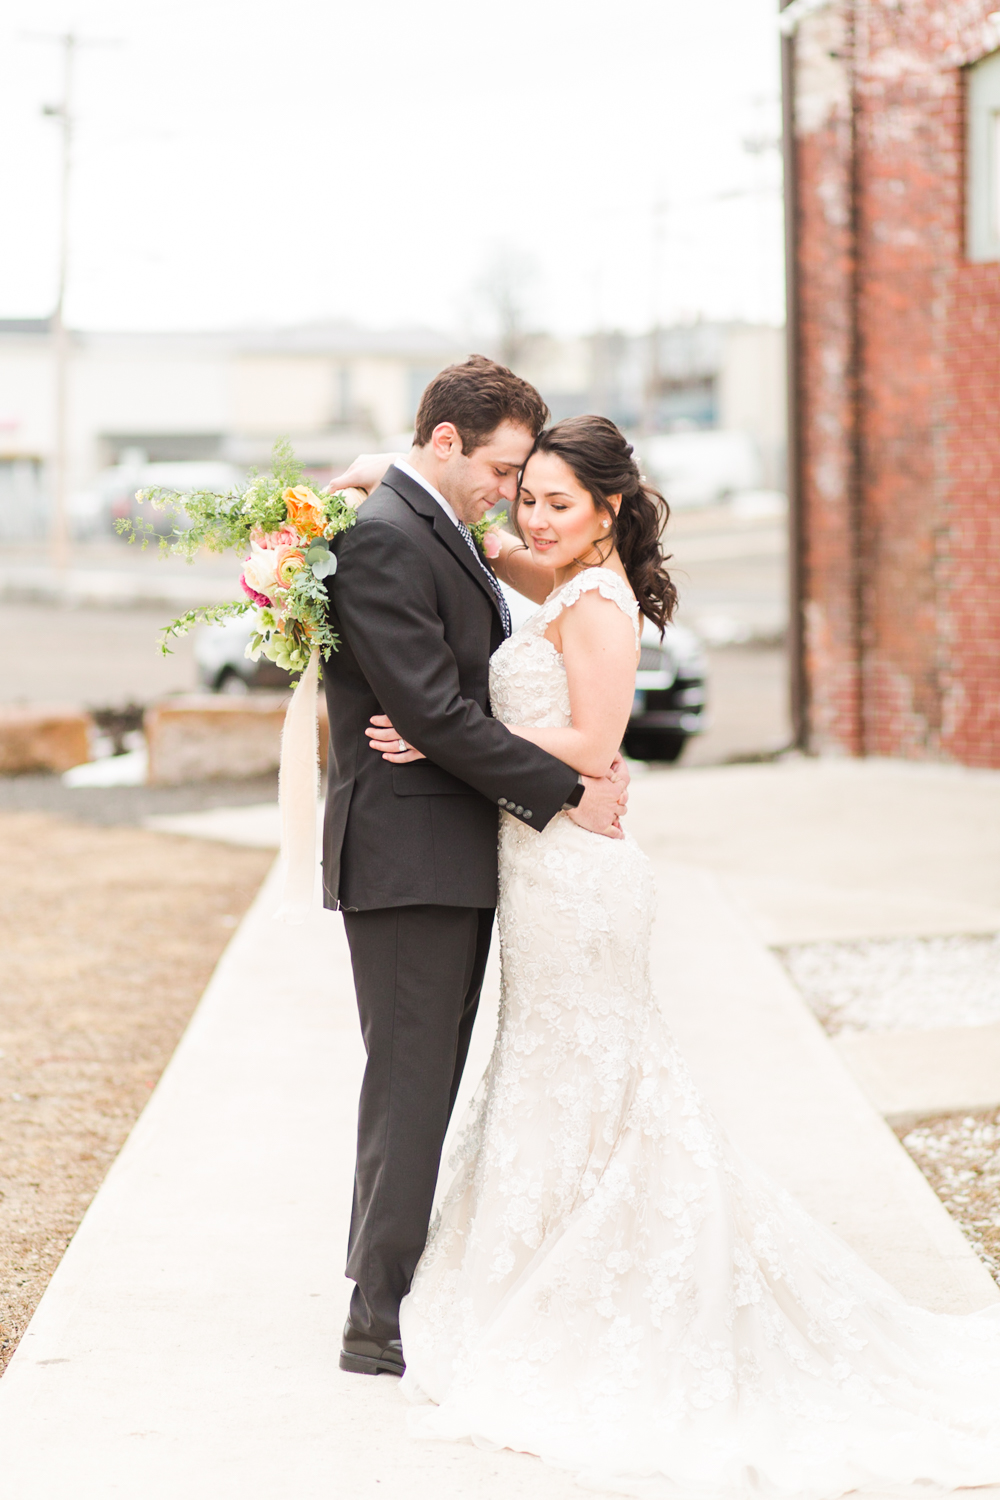 industrial-wedding-venue-bridgeport-ct-photographer-305-knowlton-shaina-lee-photography-photo